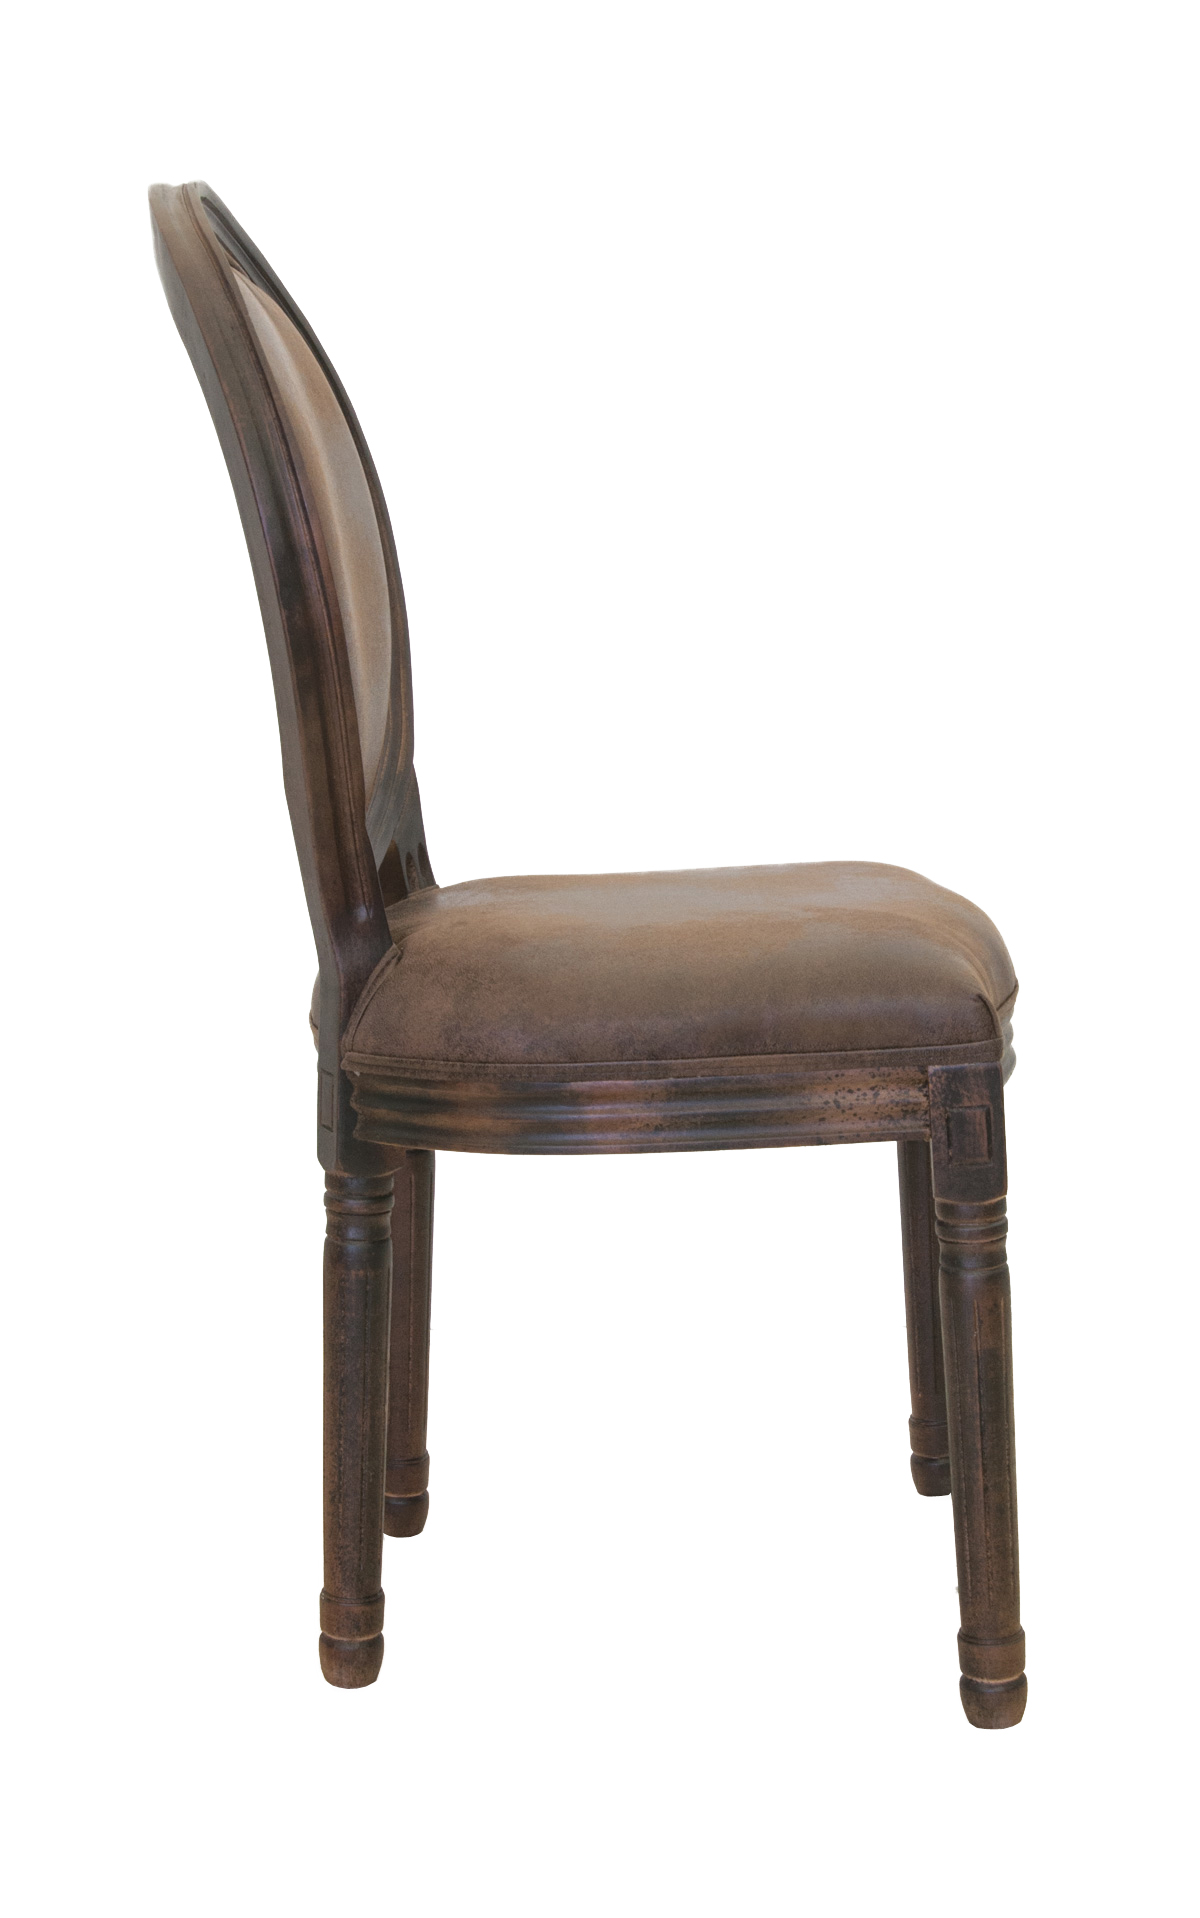 Стул Provence Volker antique (5KS24501-BR)5KS24501-BR